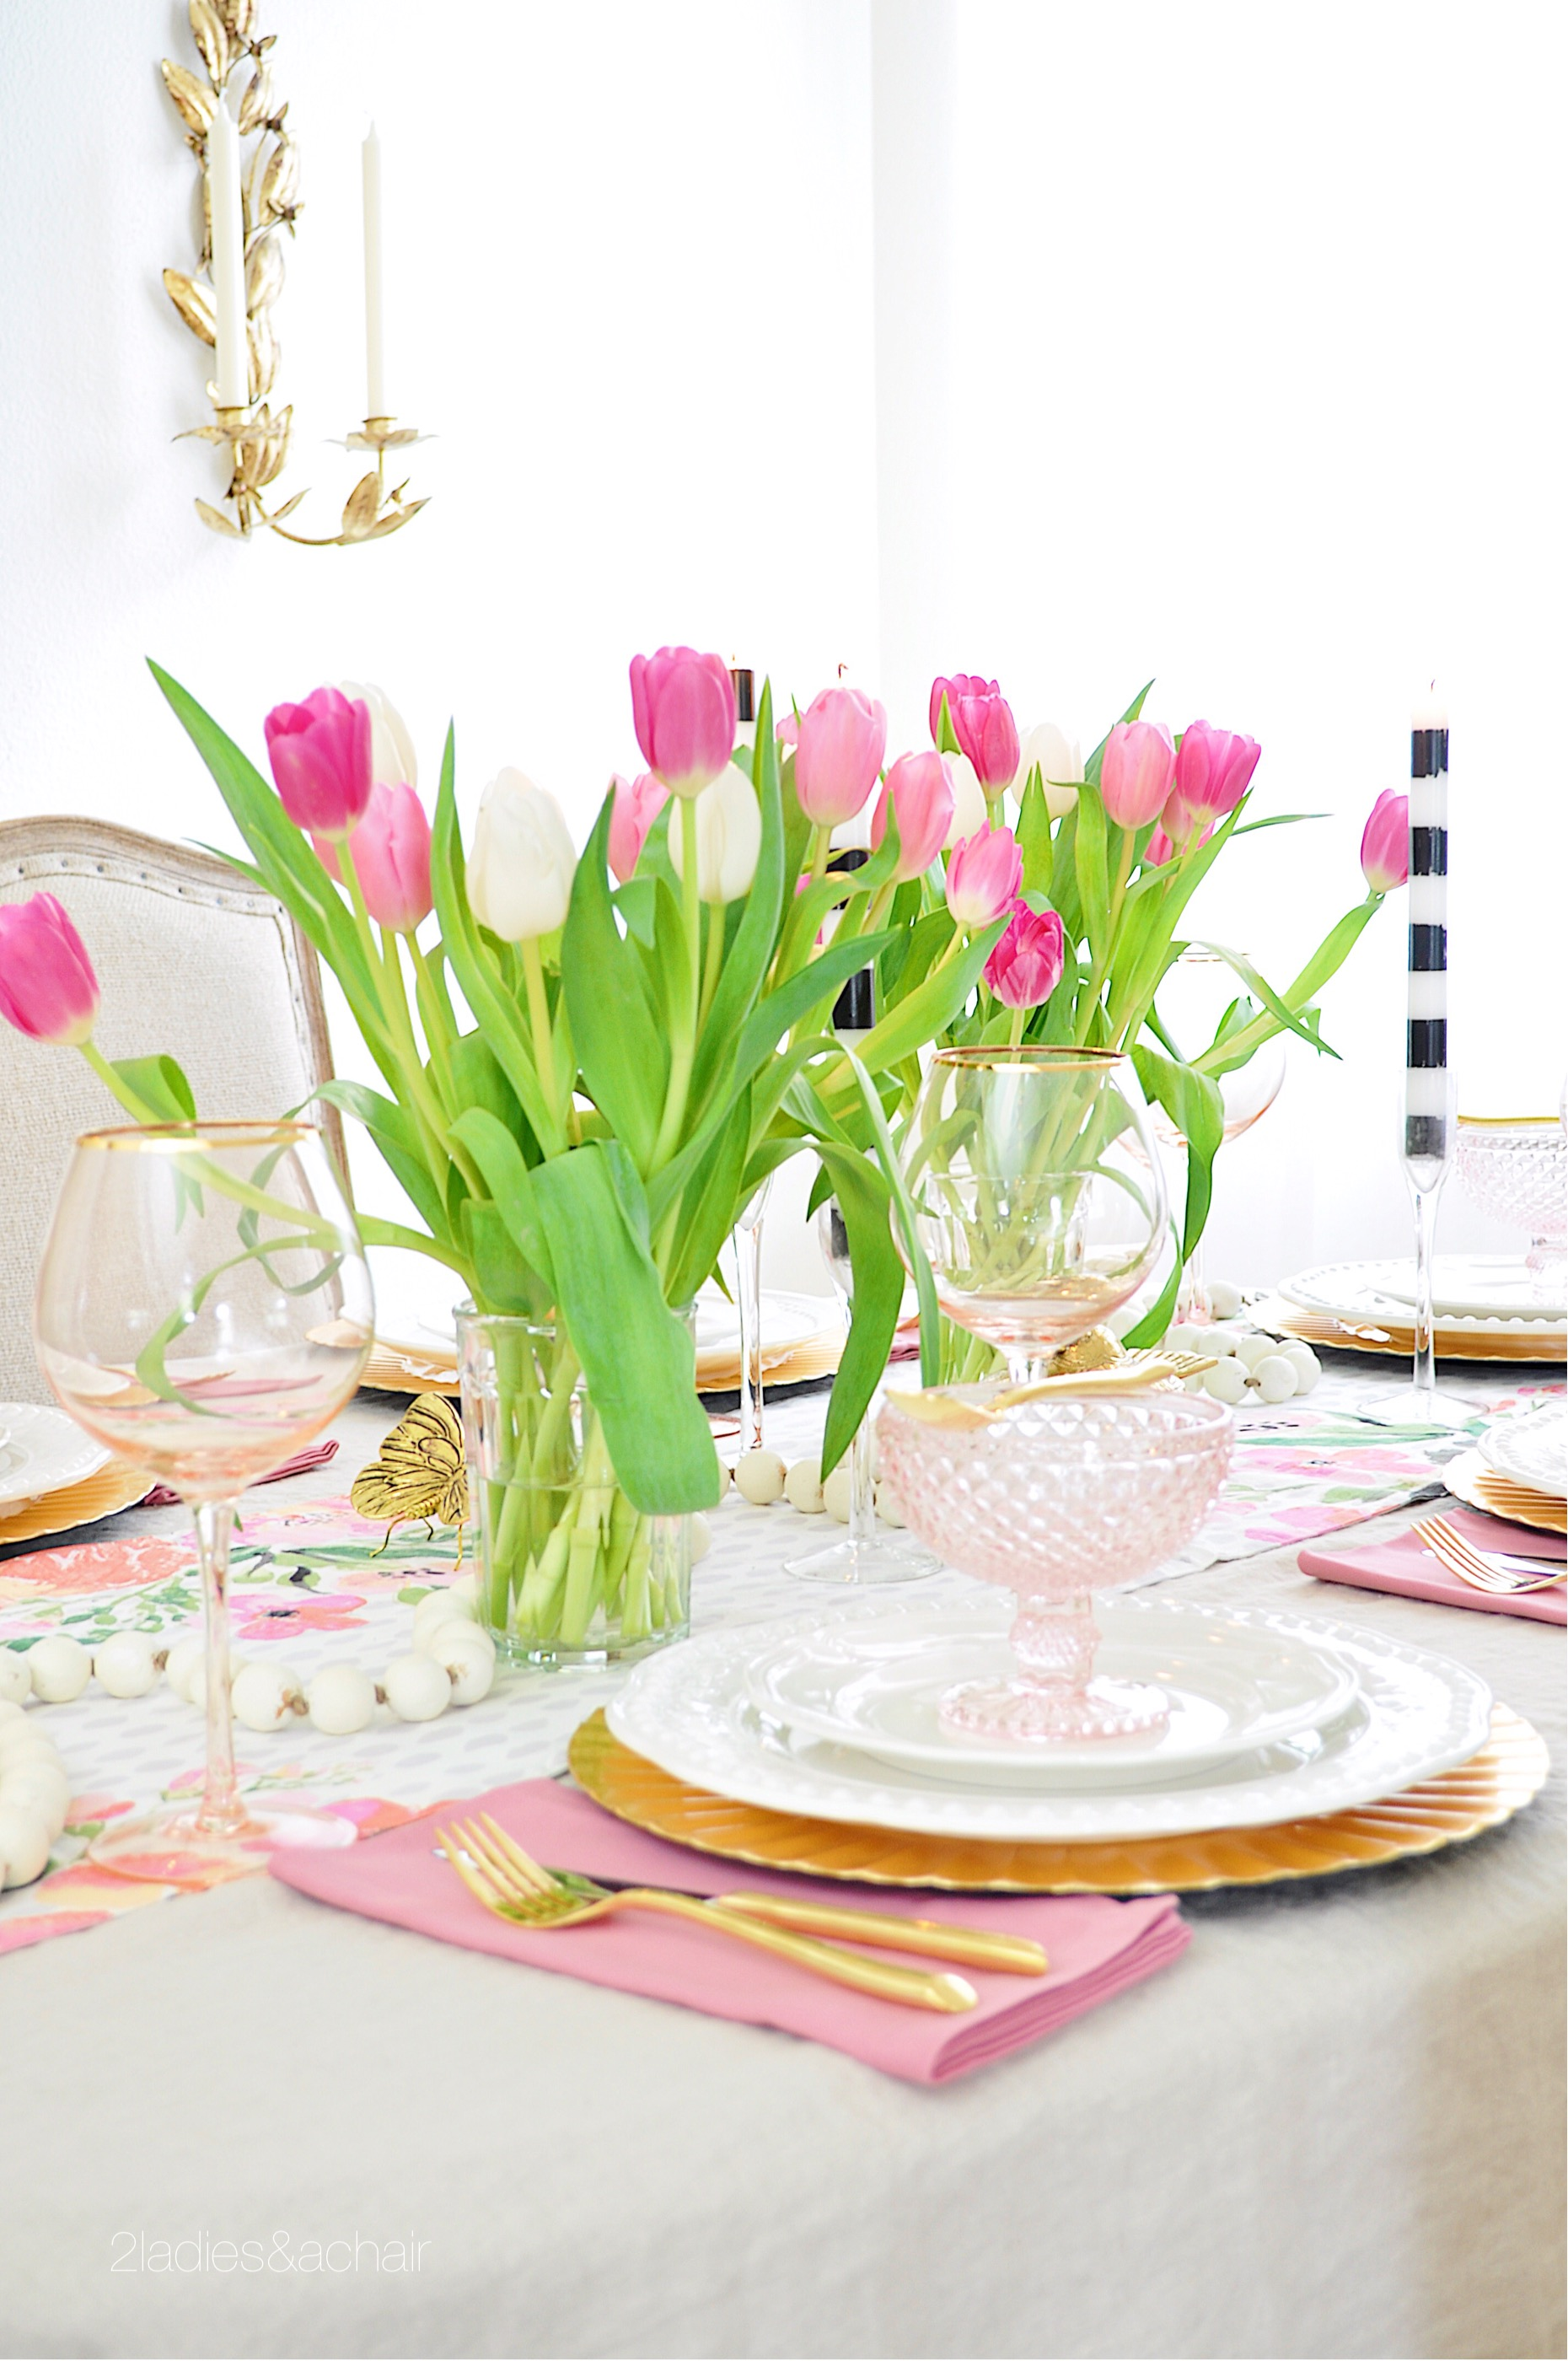 spring tablescape decor IMG_1934.JPG